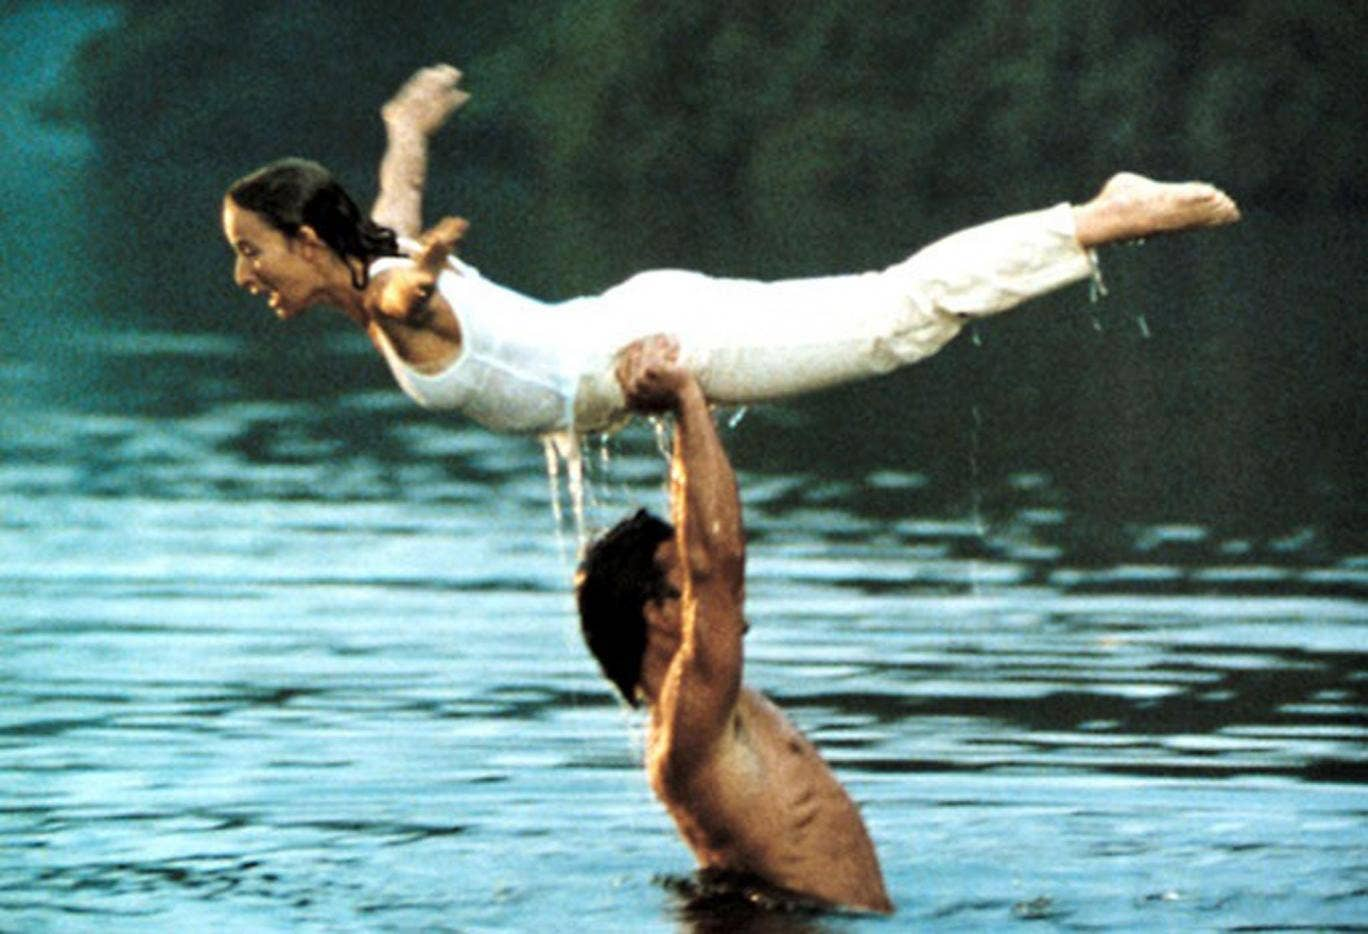 The lake scene in Dirty Dancing